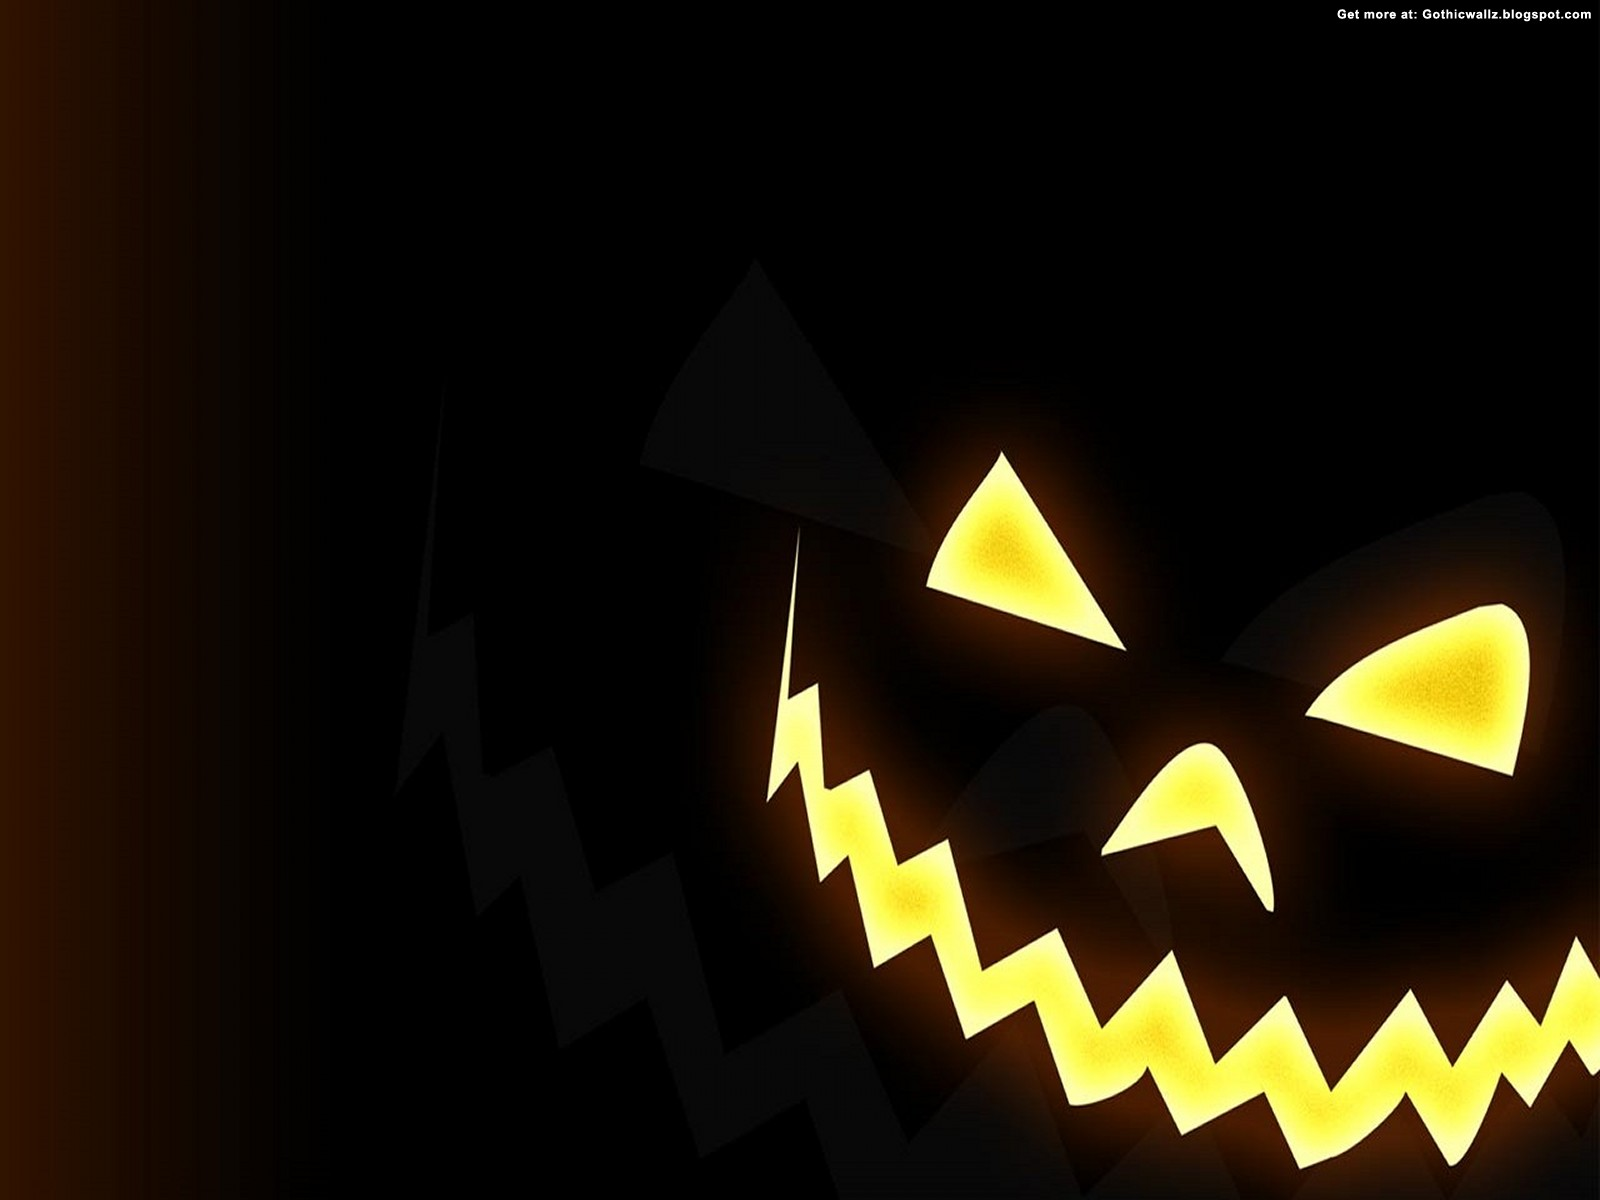 halloween face | Gothic Wallpaper Download